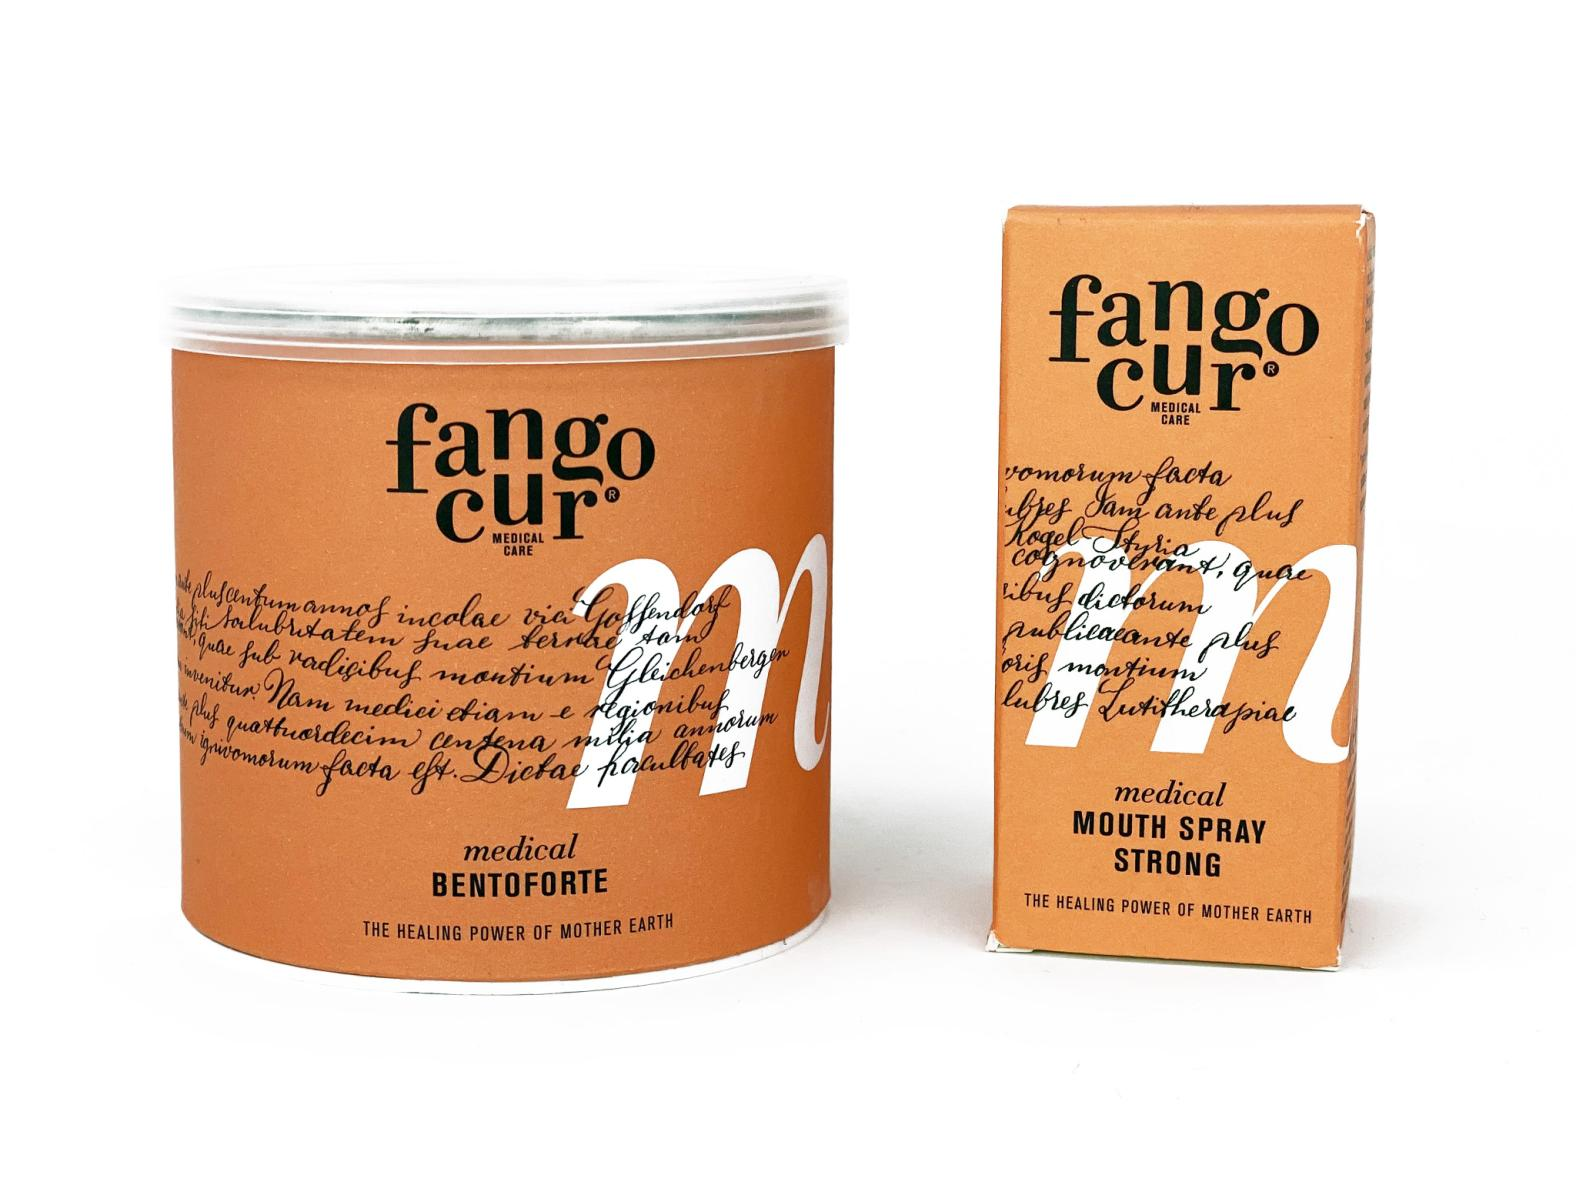 Fangocur Atem Frisch Set: Bentoforte (200 ml) + Mundspray Strong